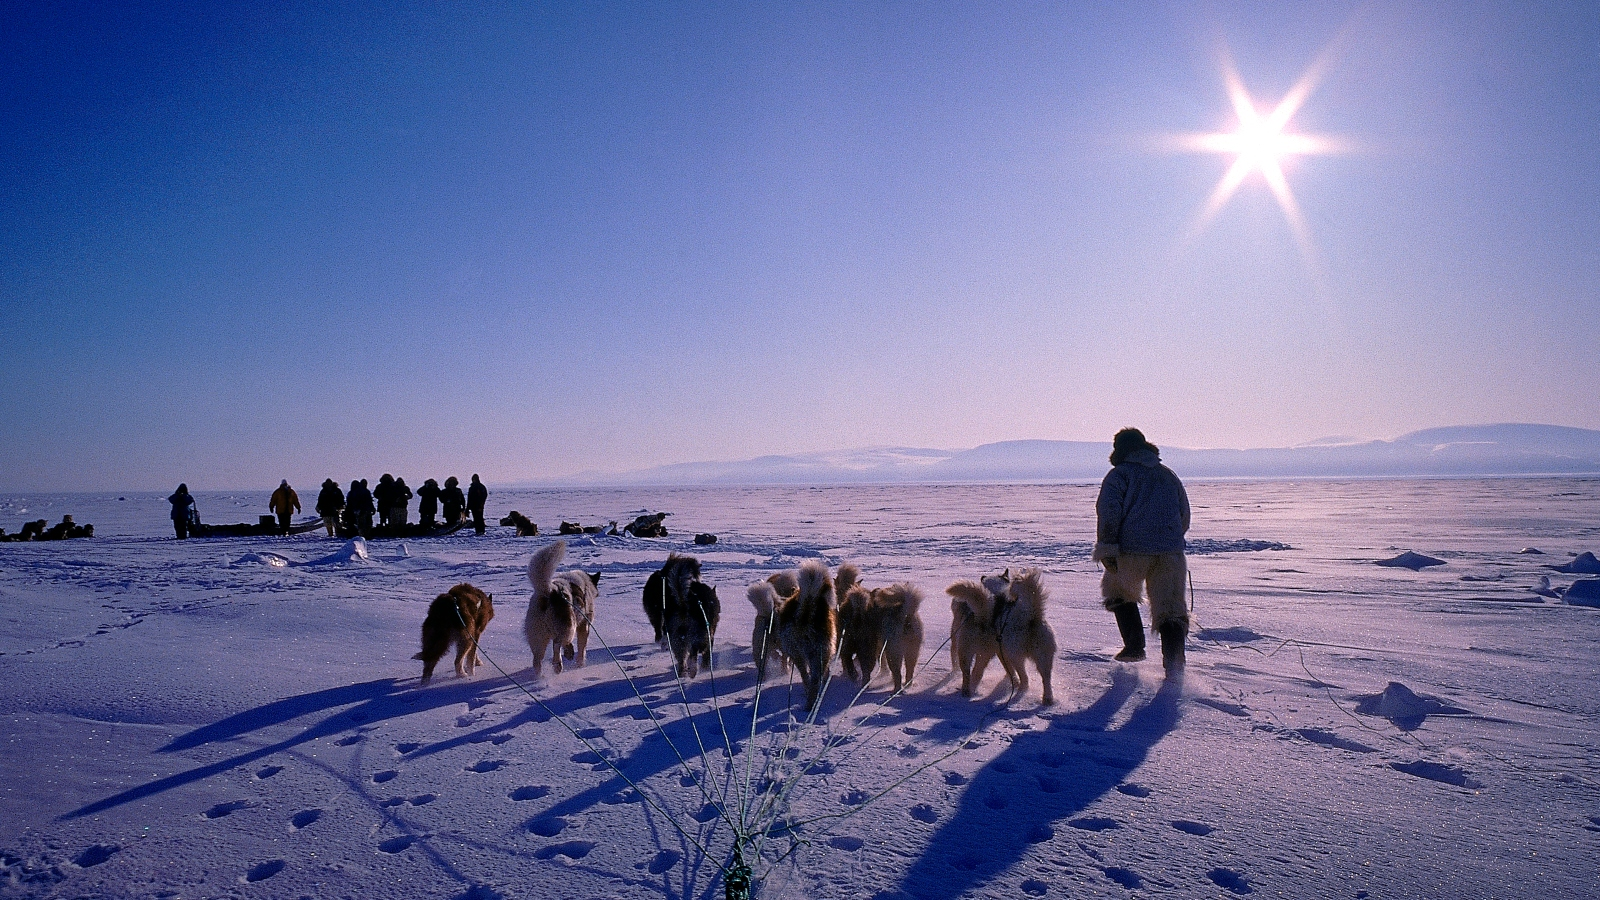 Indigenous person in the Arctic